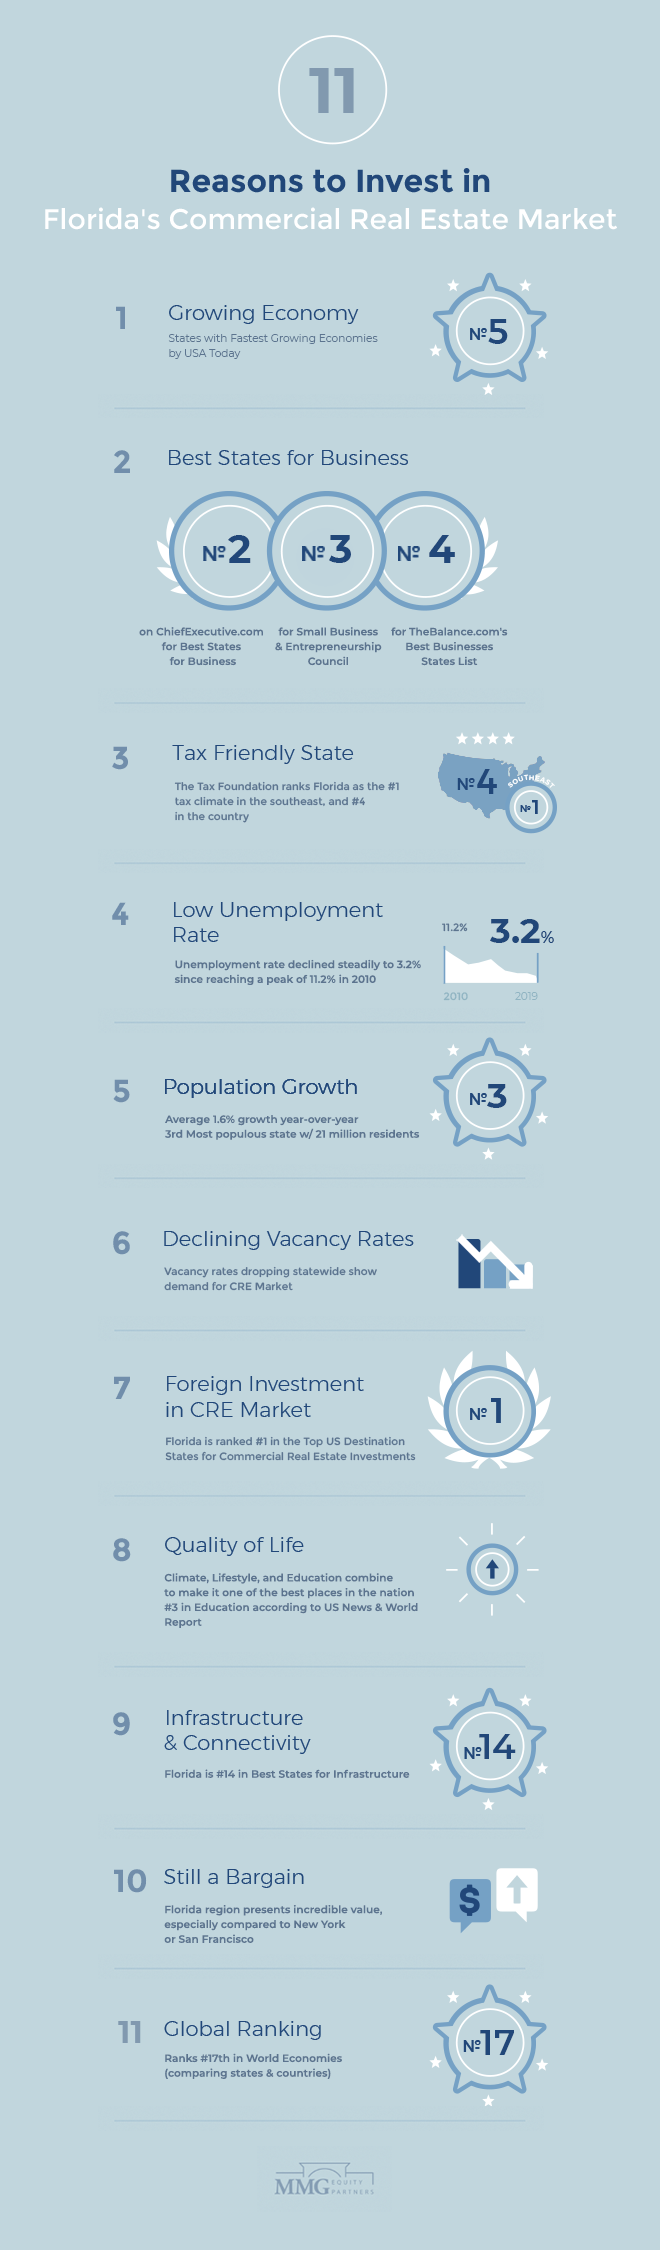 11 Reasons to Invest in Florida Commercial Real Estate - MMG Equity Partners